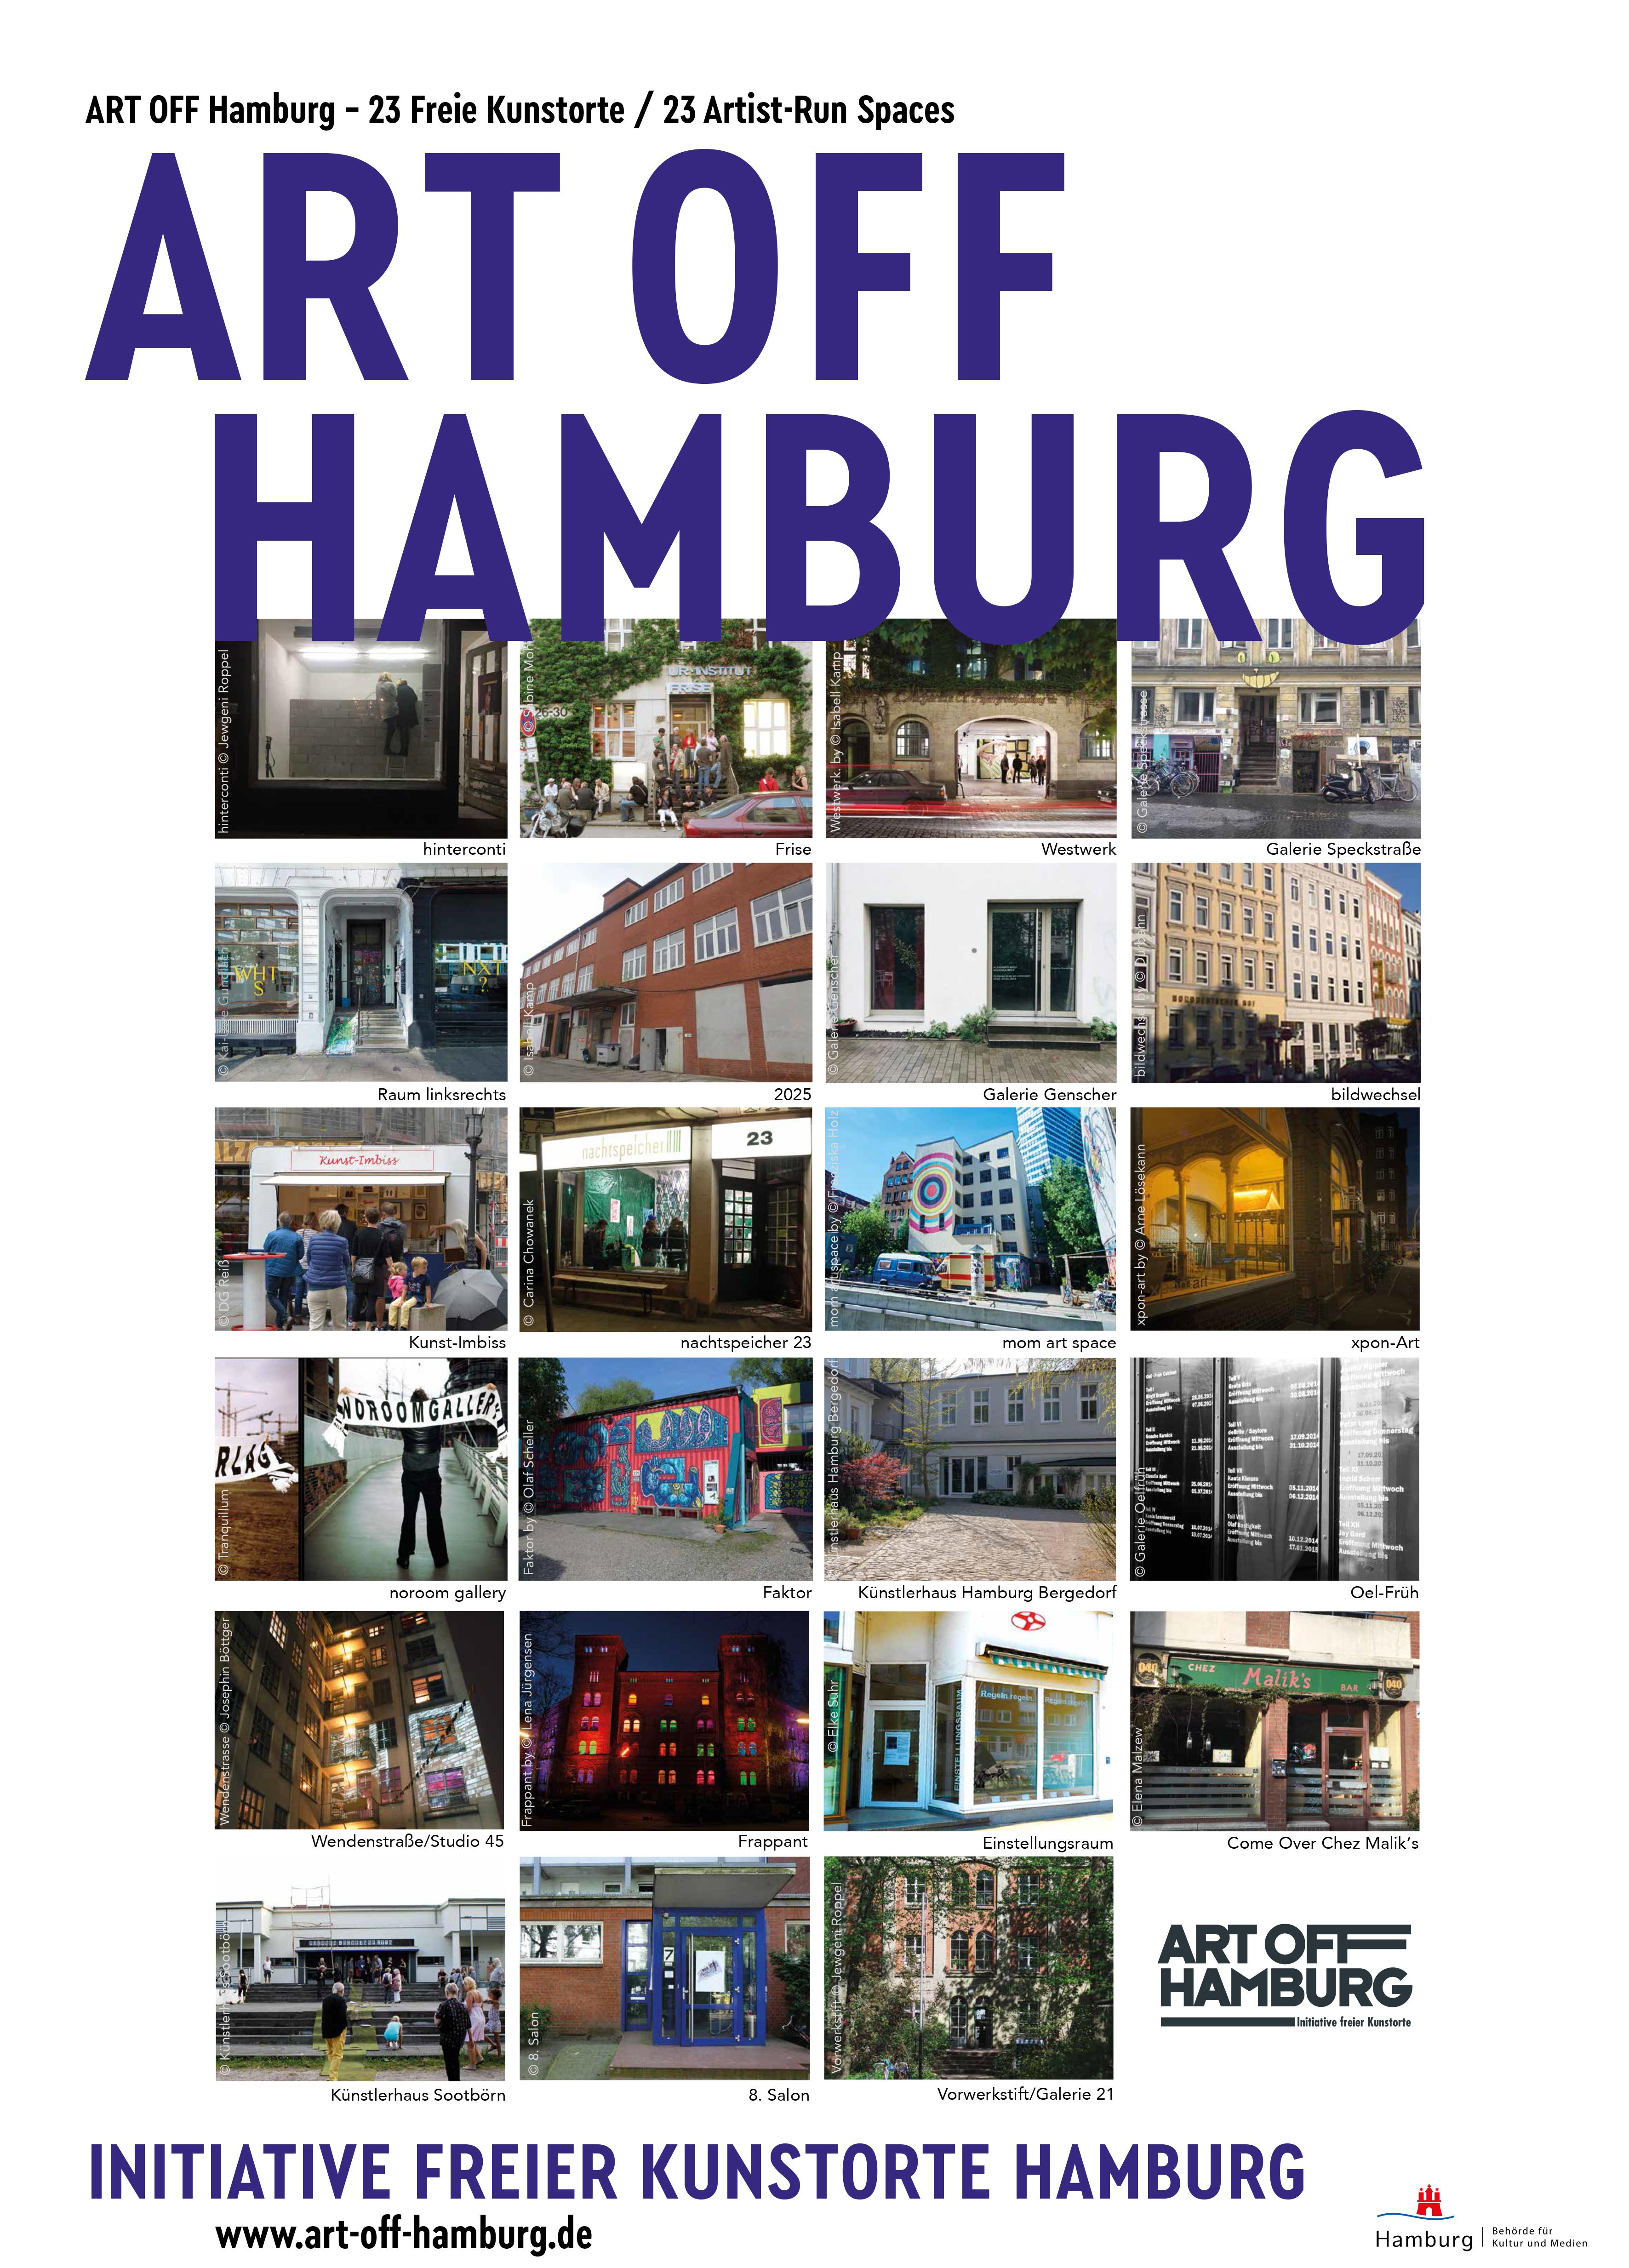 ART OFF HAMBURG – INITIATIVE OF INDEPENDENT ART SPACES IN HAMBURG